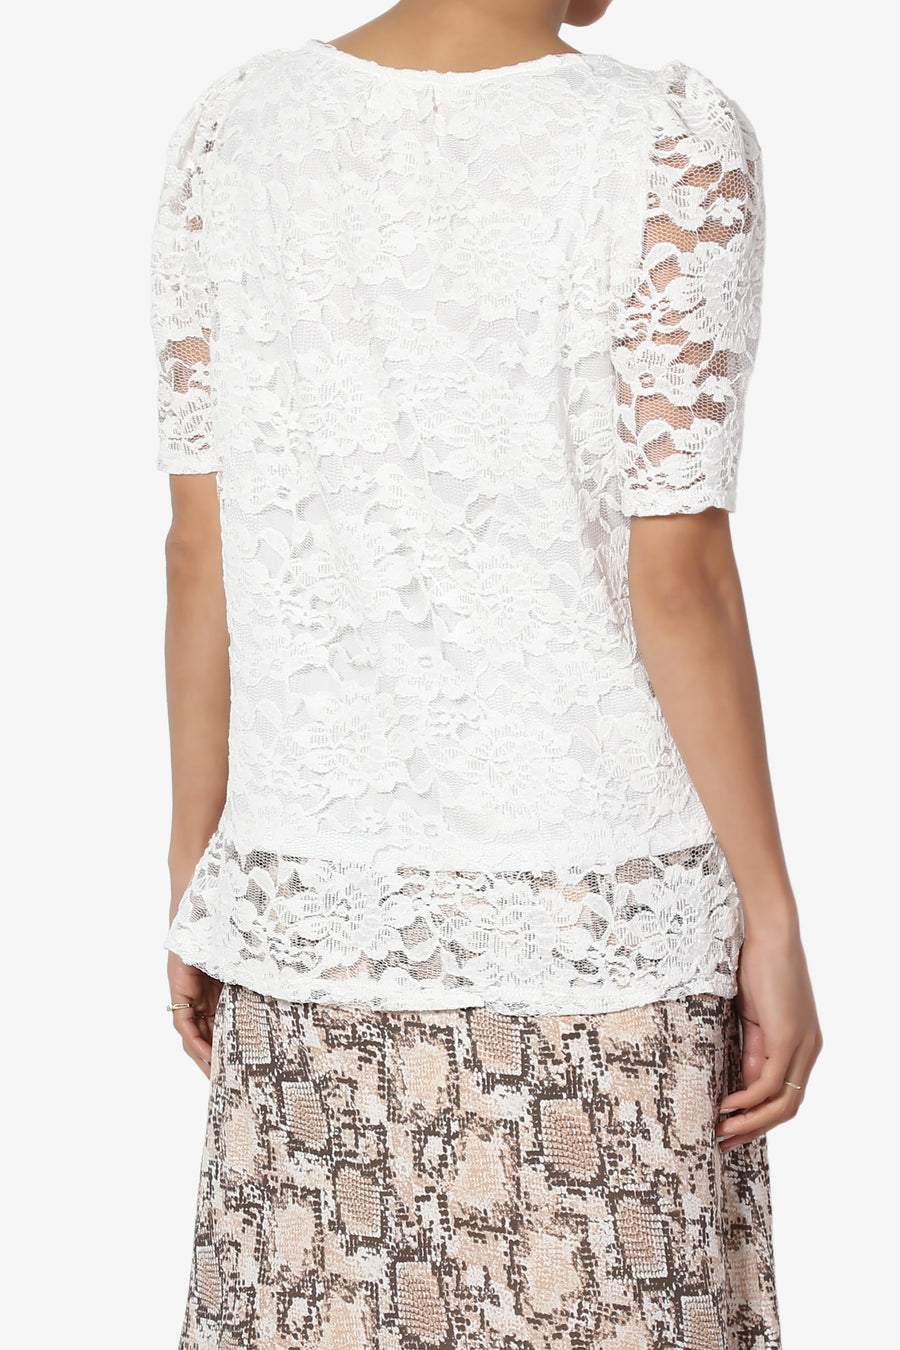 Regina Puff Sleeve Lace Top